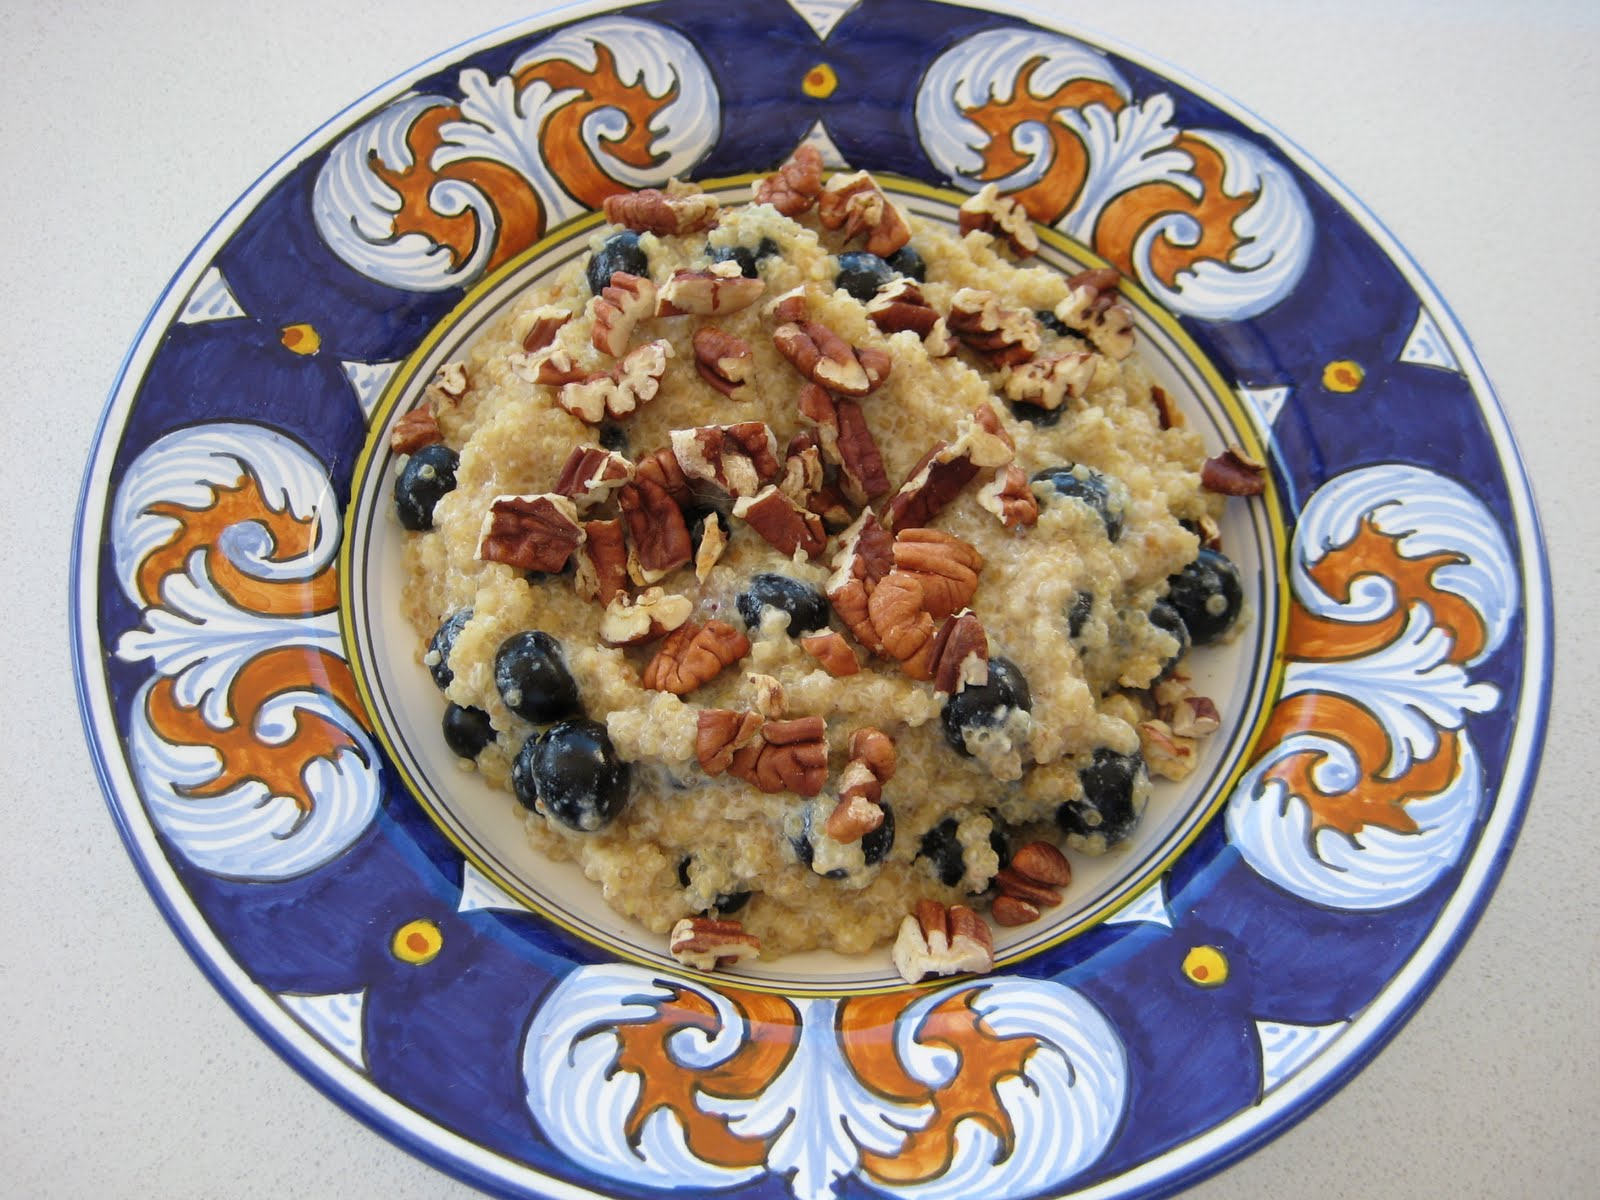 Lexi's Kitchen: QUINOA PORRIDGE WITH BLUEBERRIES AND PECANS